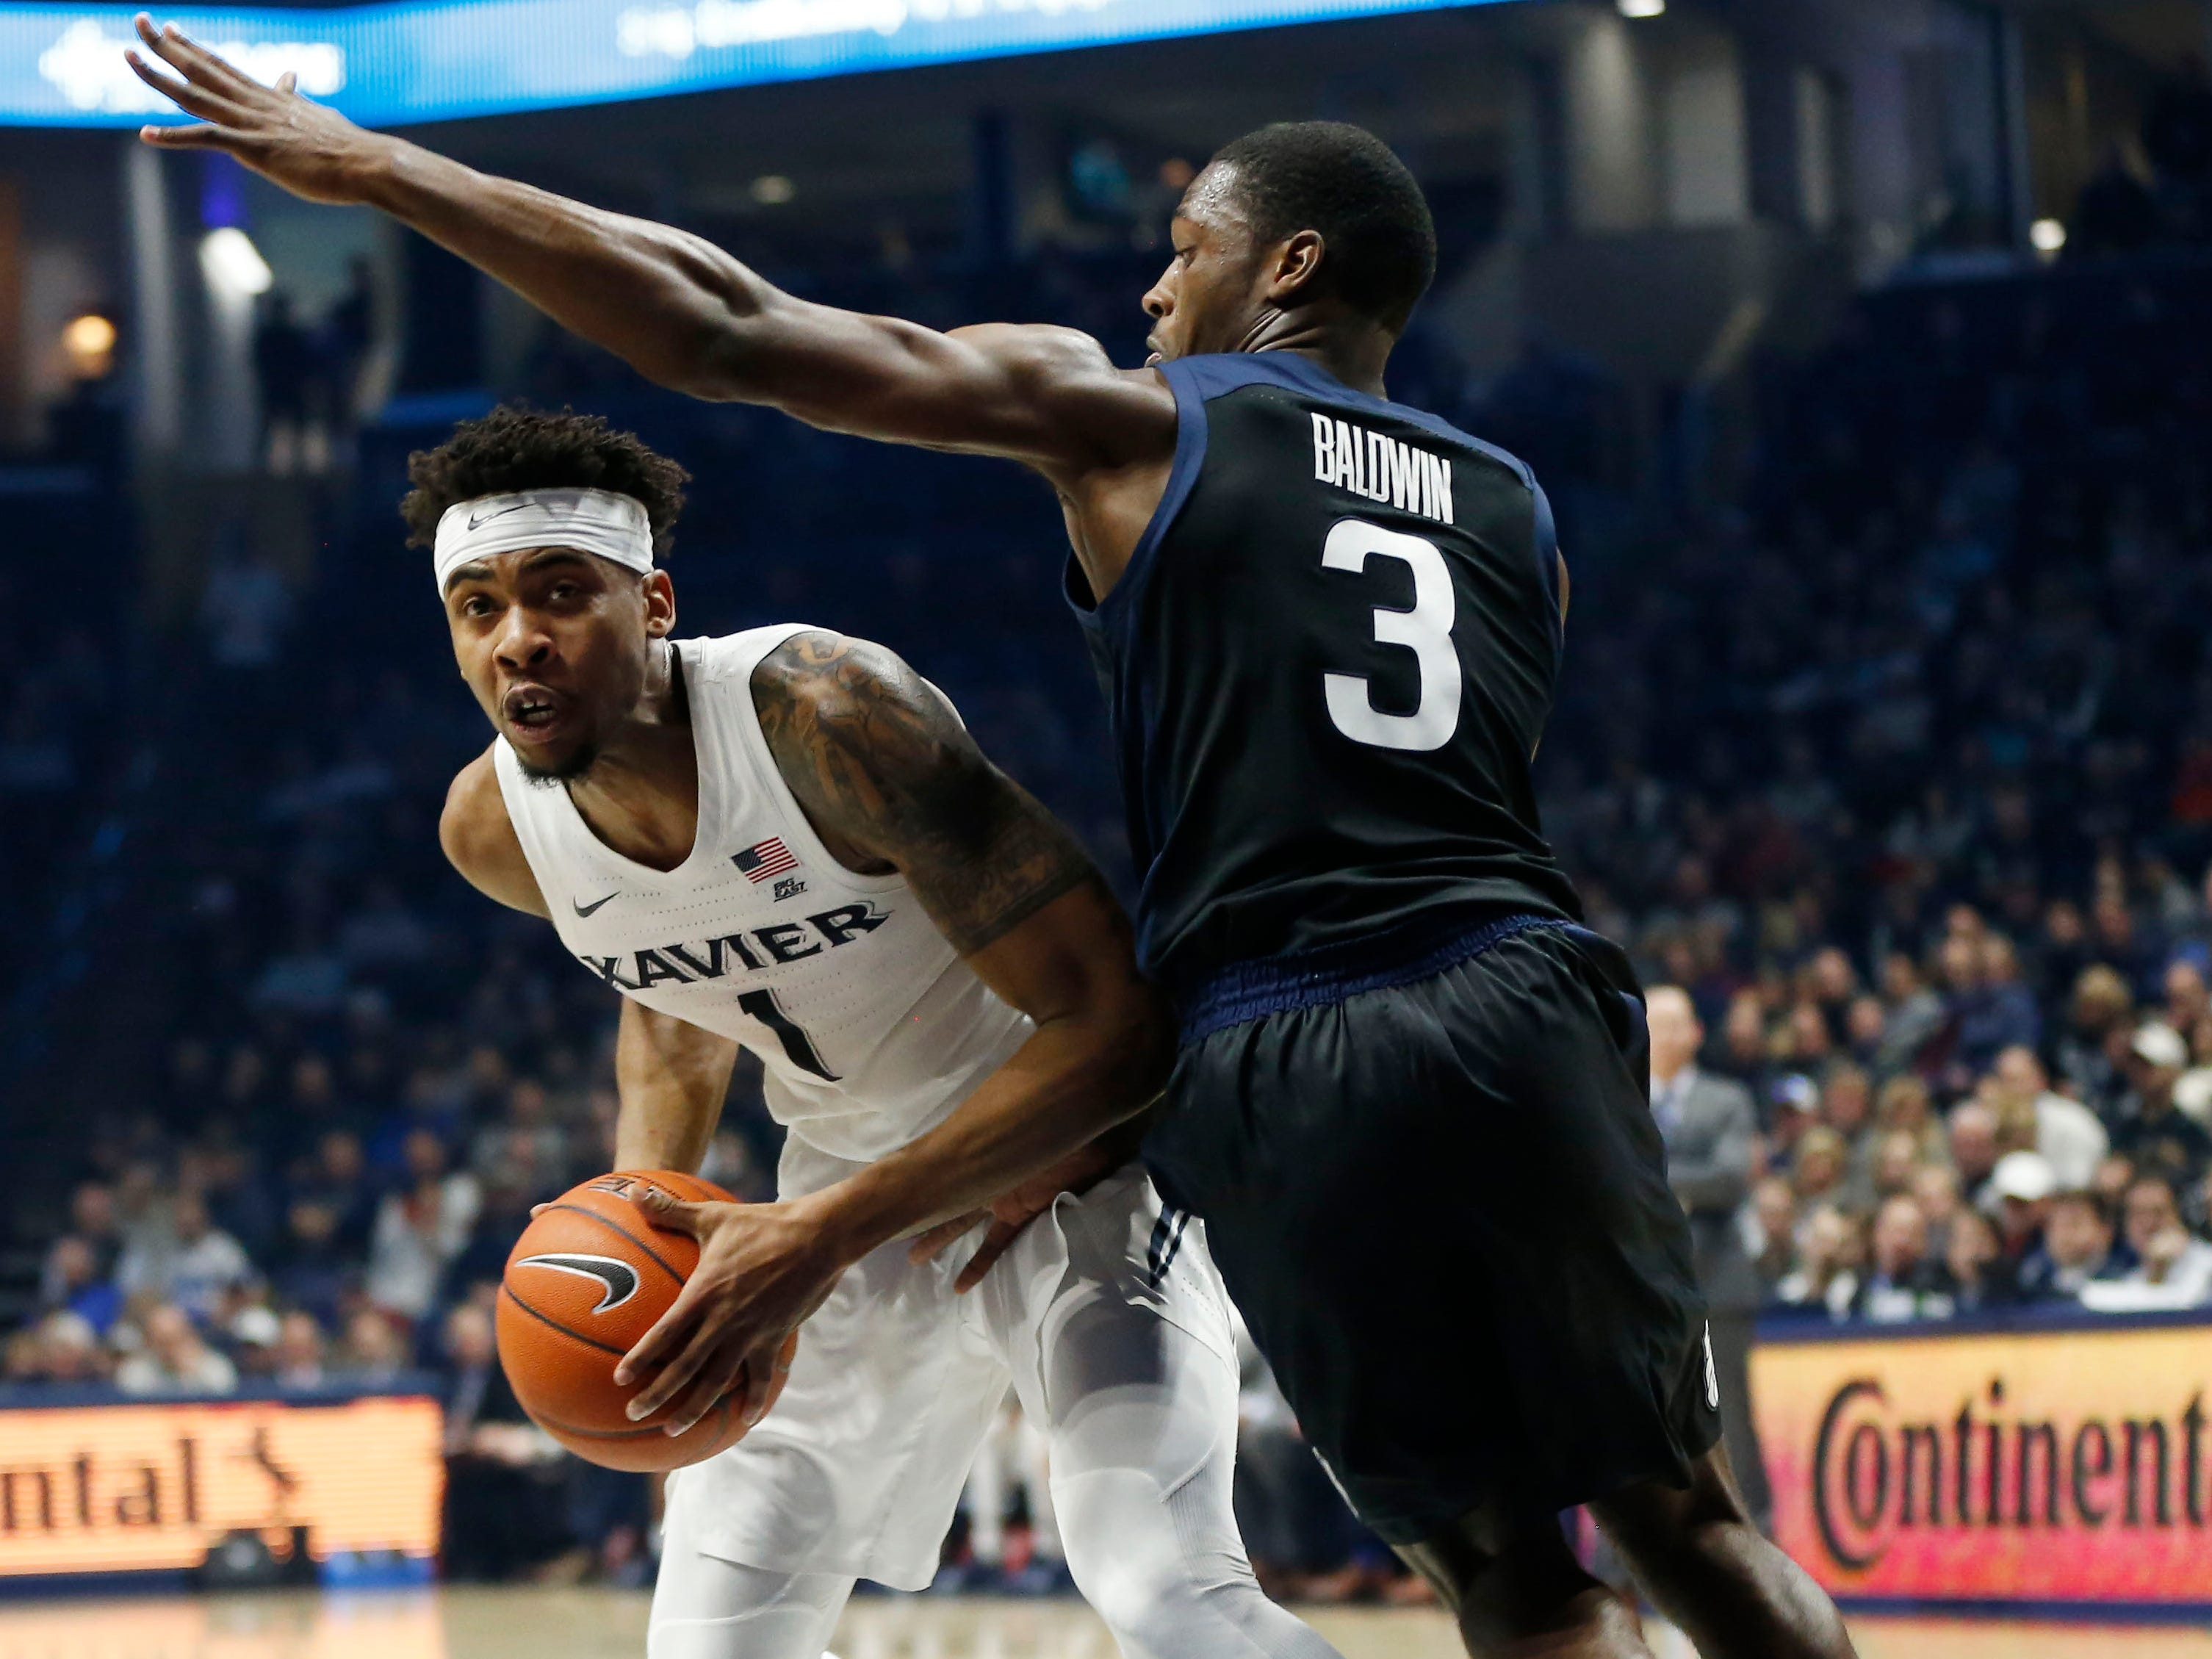 Jan 13, 2019; Cincinnati, OH, USA; Xavier Musketeers guard Paul Scruggs (1) looks to pass during the first half against the Butler Bulldogs guard Kamar Baldwin (3) at the Cintas Center.